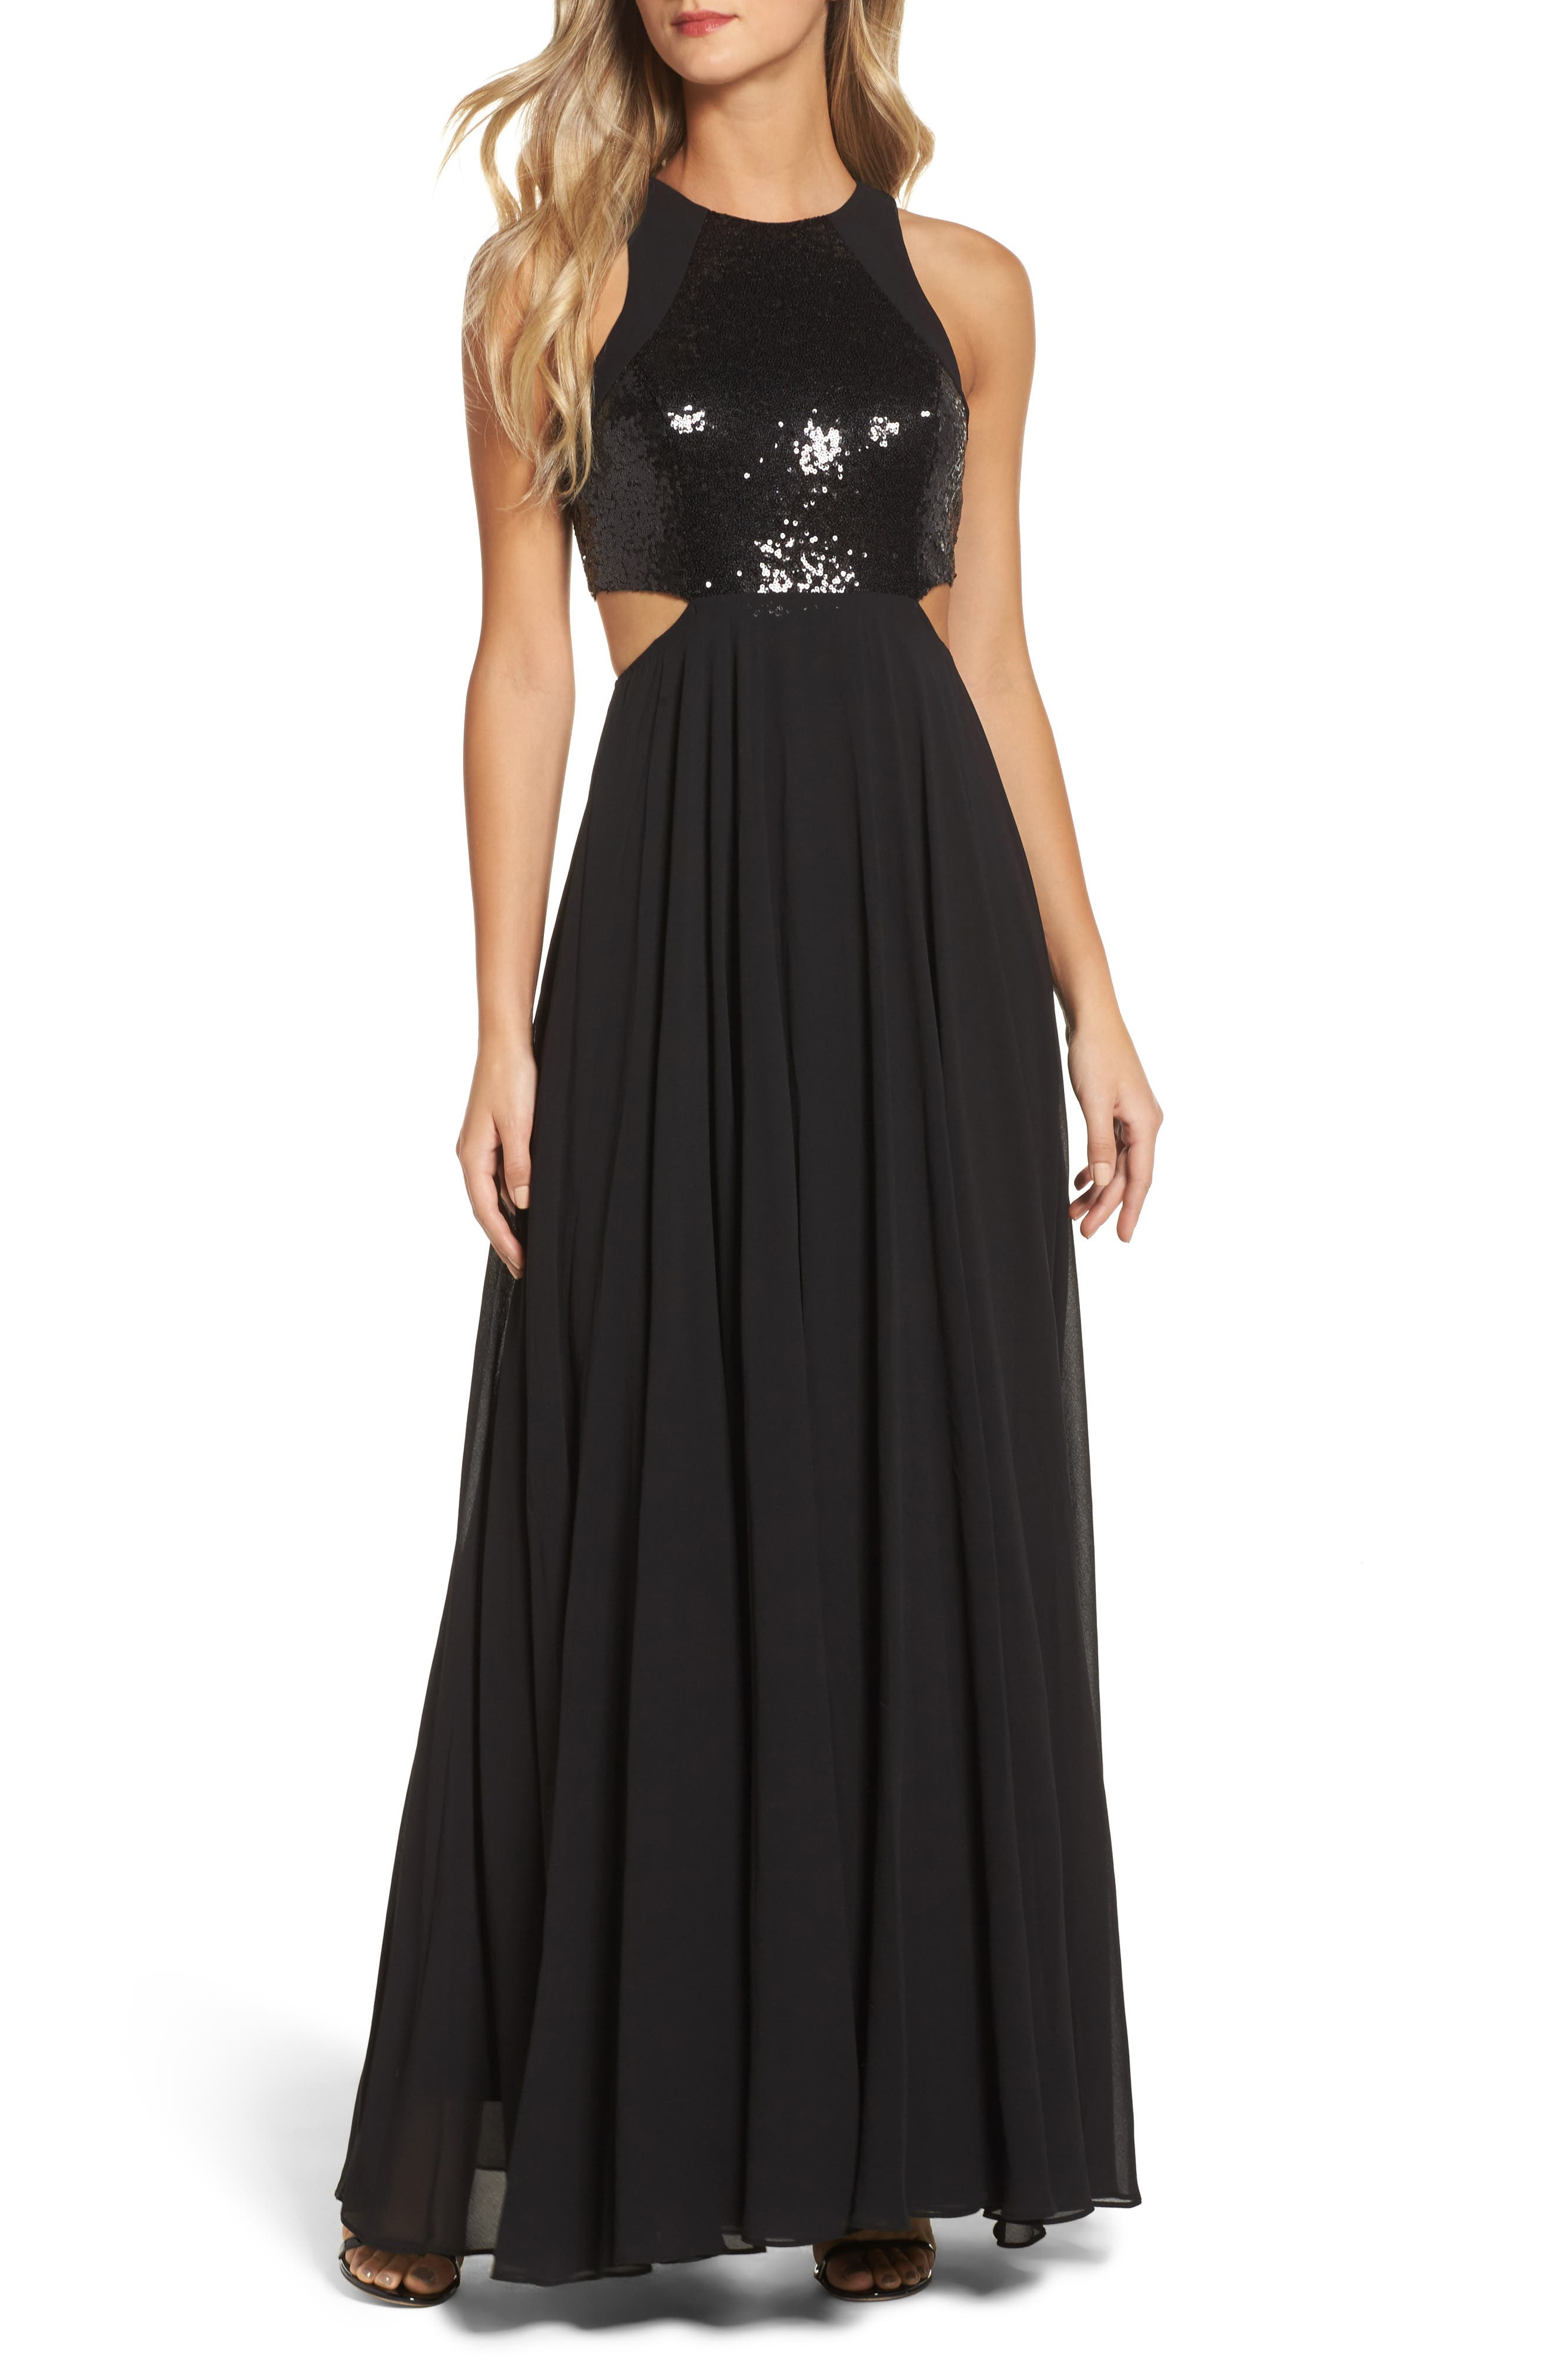 Nothing but Love Sequin Bodice Maxi Dress,                             Main thumbnail 1, color,                             Black